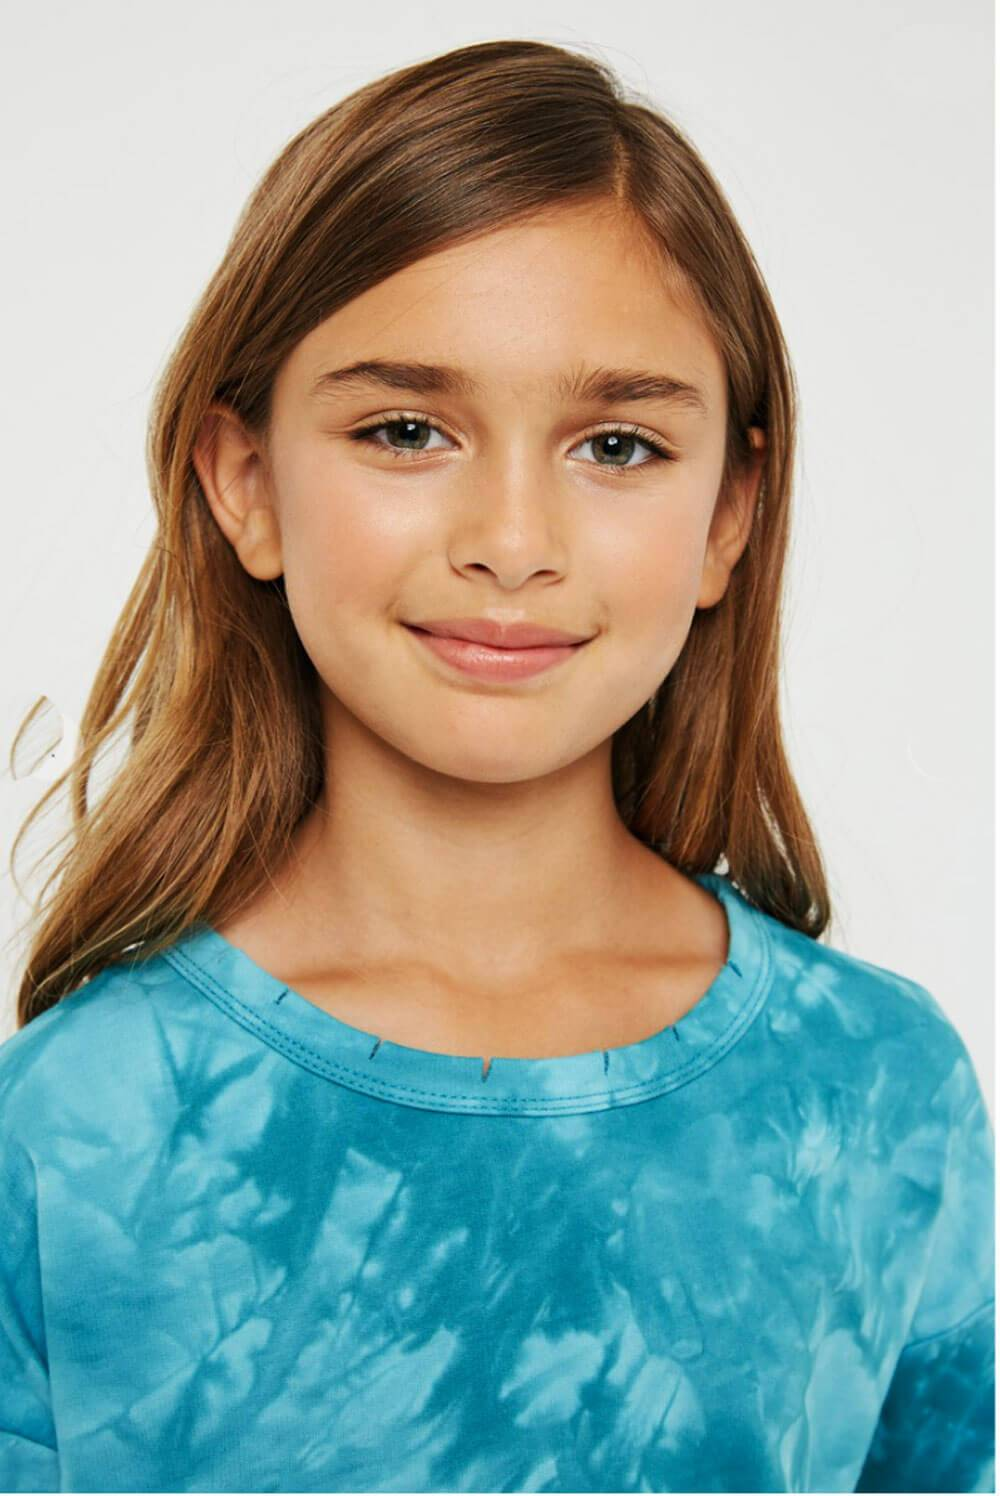 Girls Distressed Crew Neck Tie Dyed Sweatshirt teal detail MILK MONEY Kids